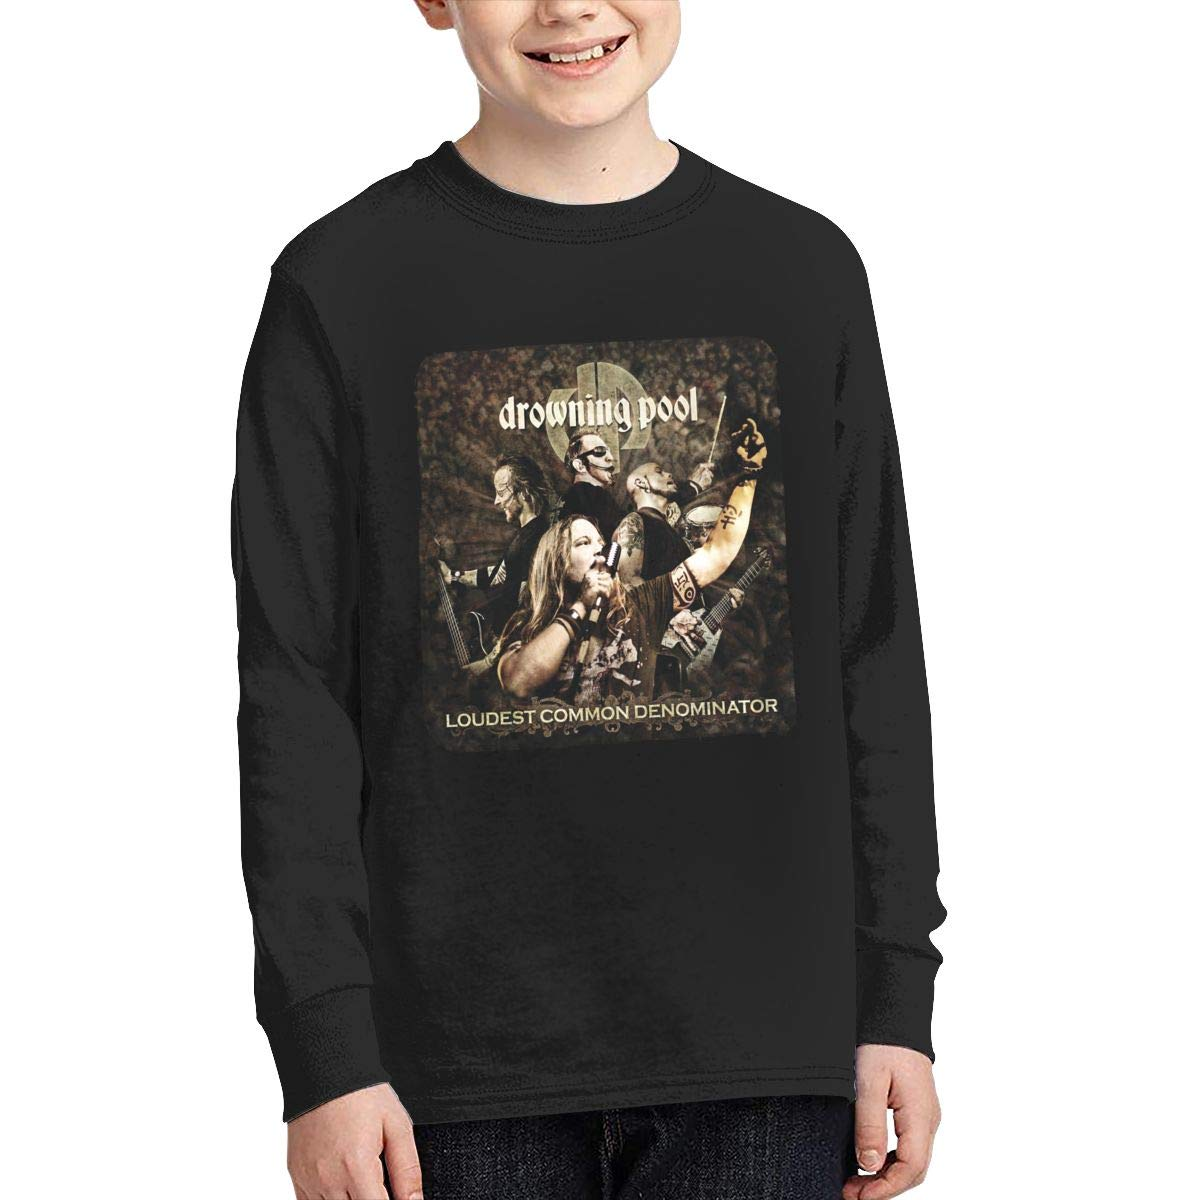 MichaelHazzard Drowning Pool Youth Casual Long Sleeve Crewneck Tee T-Shirt for Boys and Girls